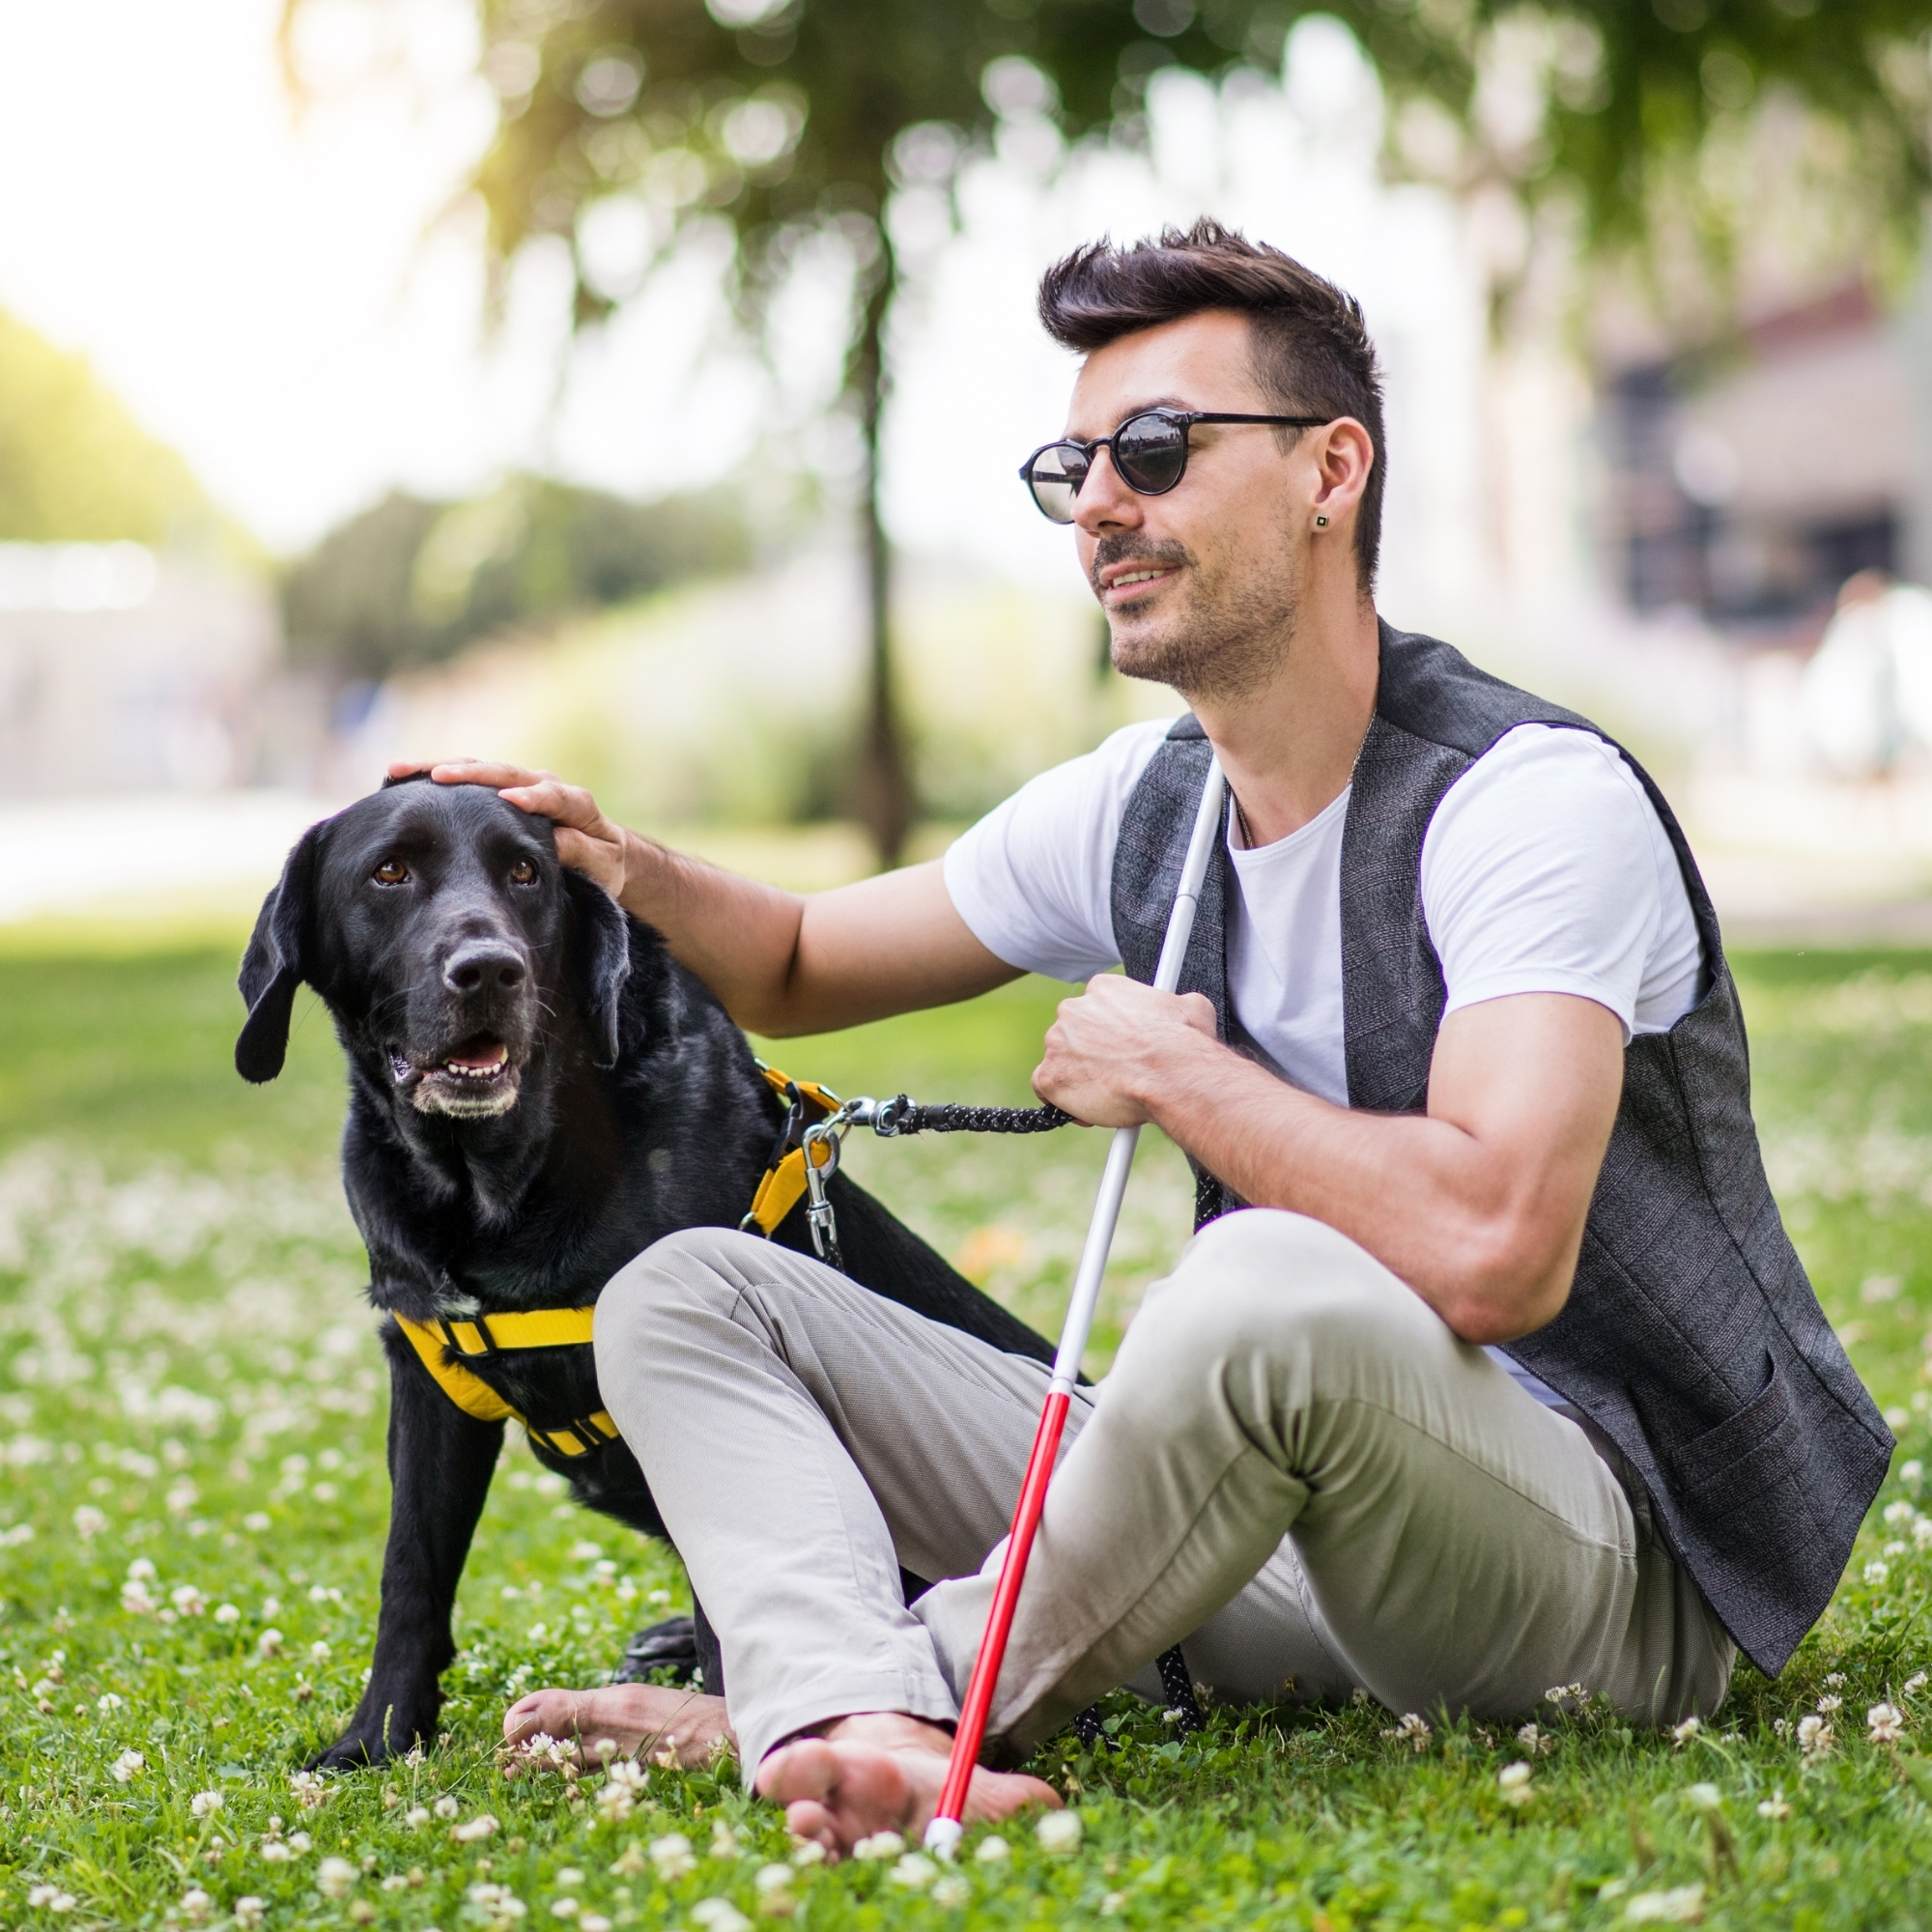 Blind man sitting in grass with guide dog